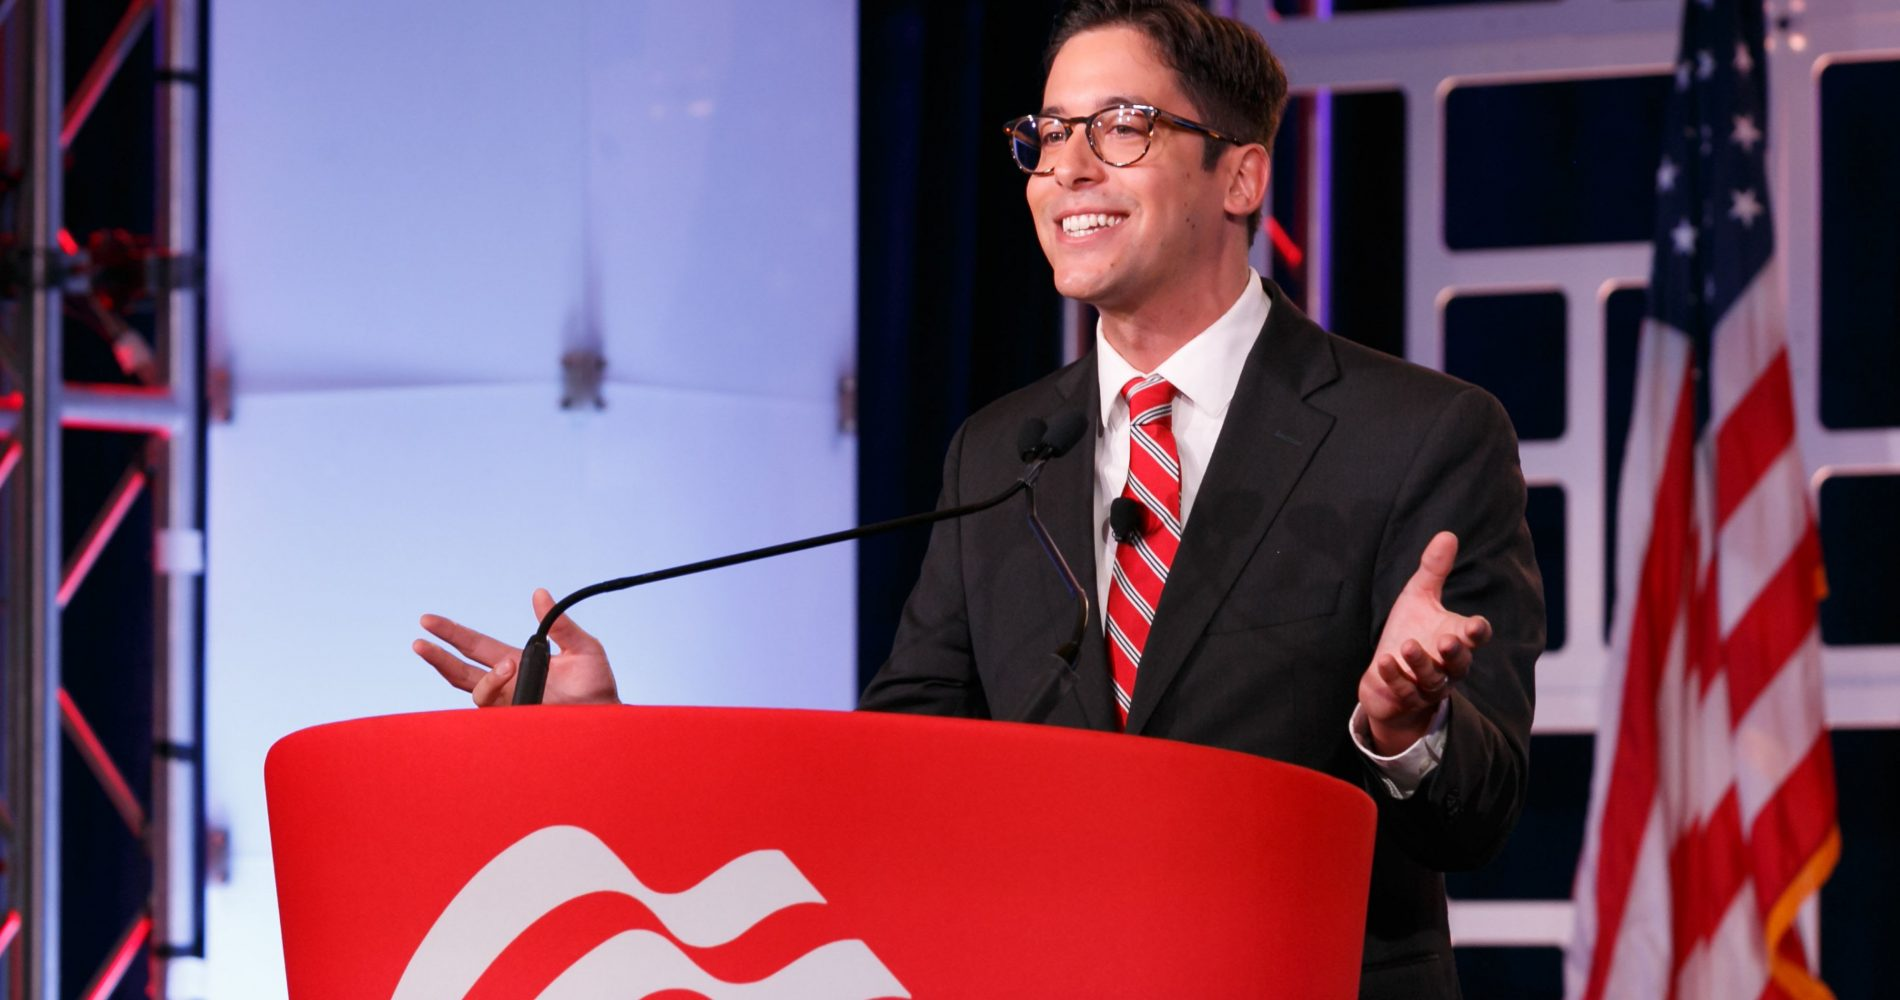 <h1><strong>Deadline August 1 <br>To Host Michael Knowles <br>On YOUR Campus</strong></h1>